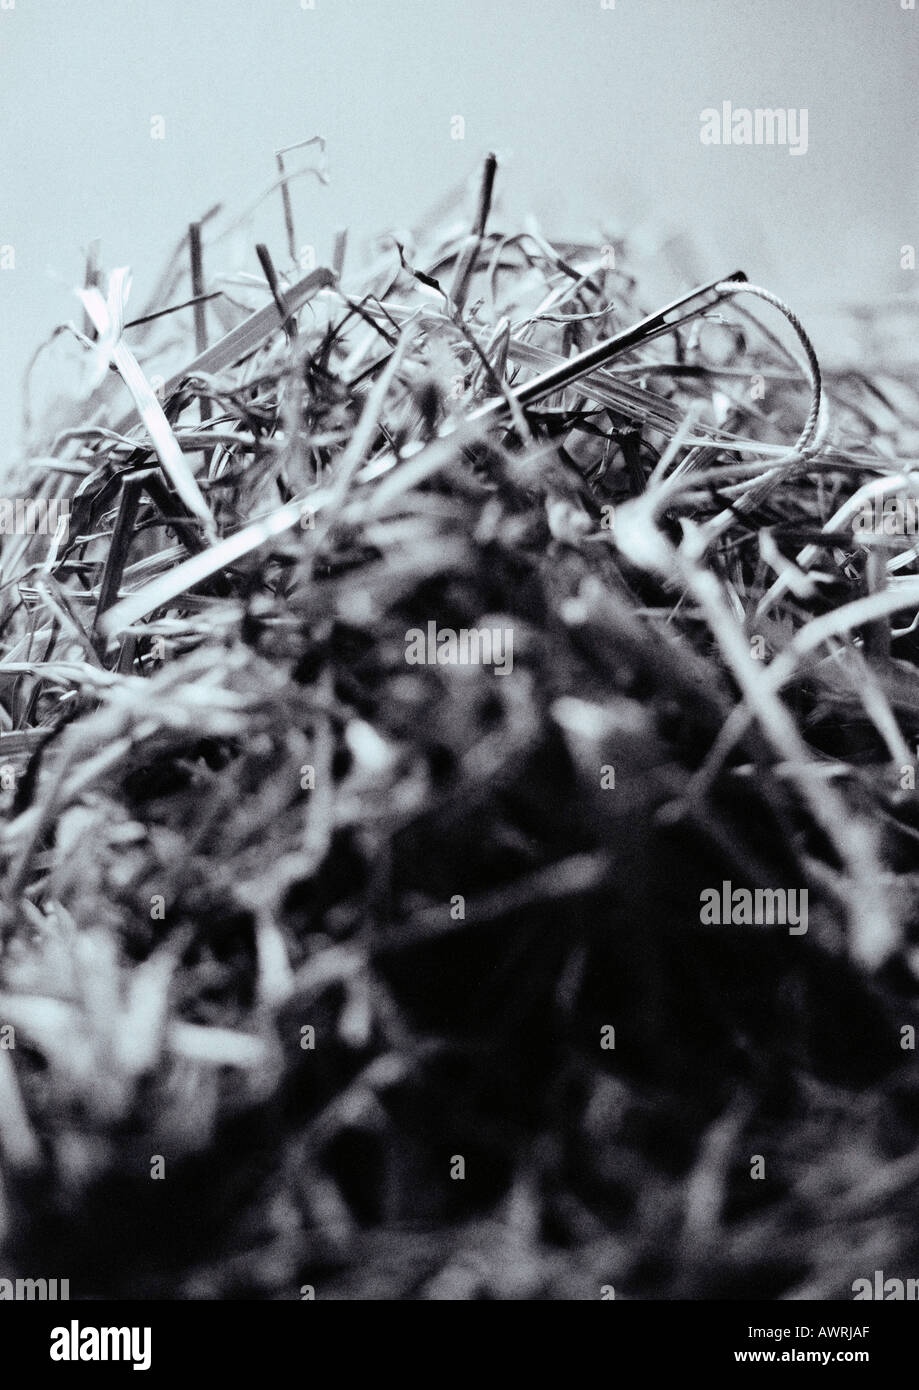 Needle in haystack, close-up - Stock Image